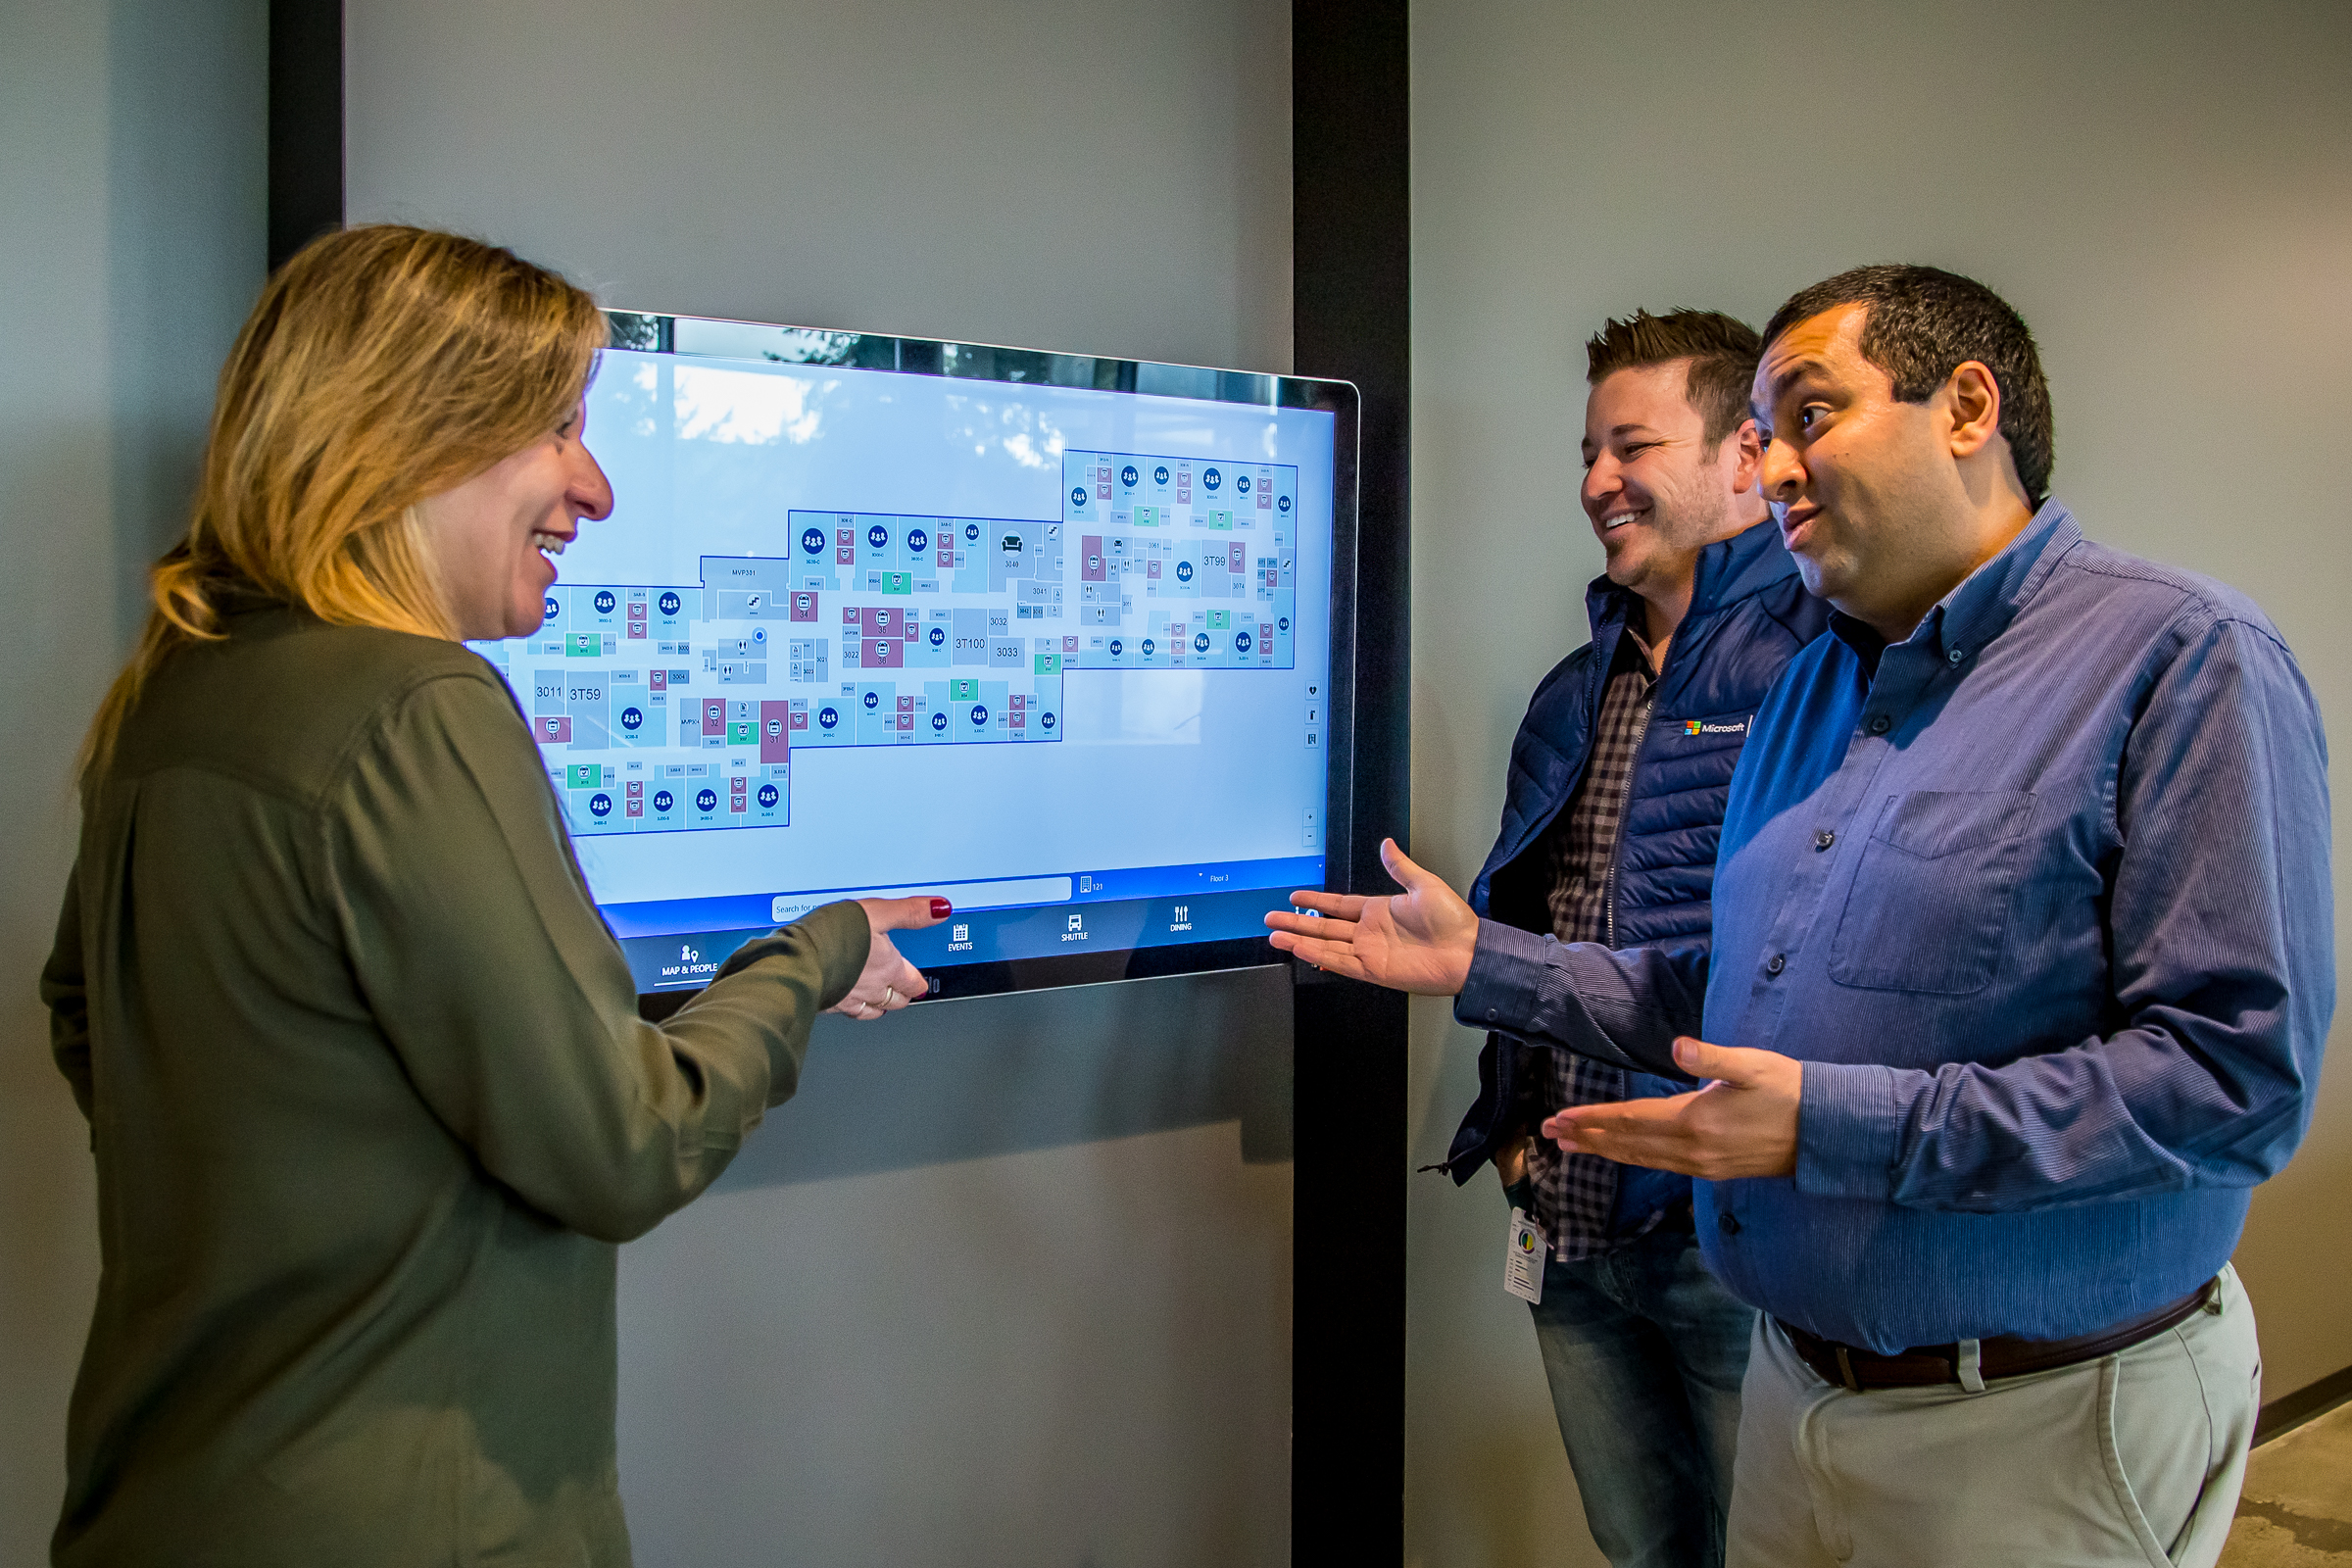 Kelly Monteiro and Pankaj Arora both gesture at a new smart building kiosk mounted on a wall in the stairwell of Building 121. Weston Henderson looks on.